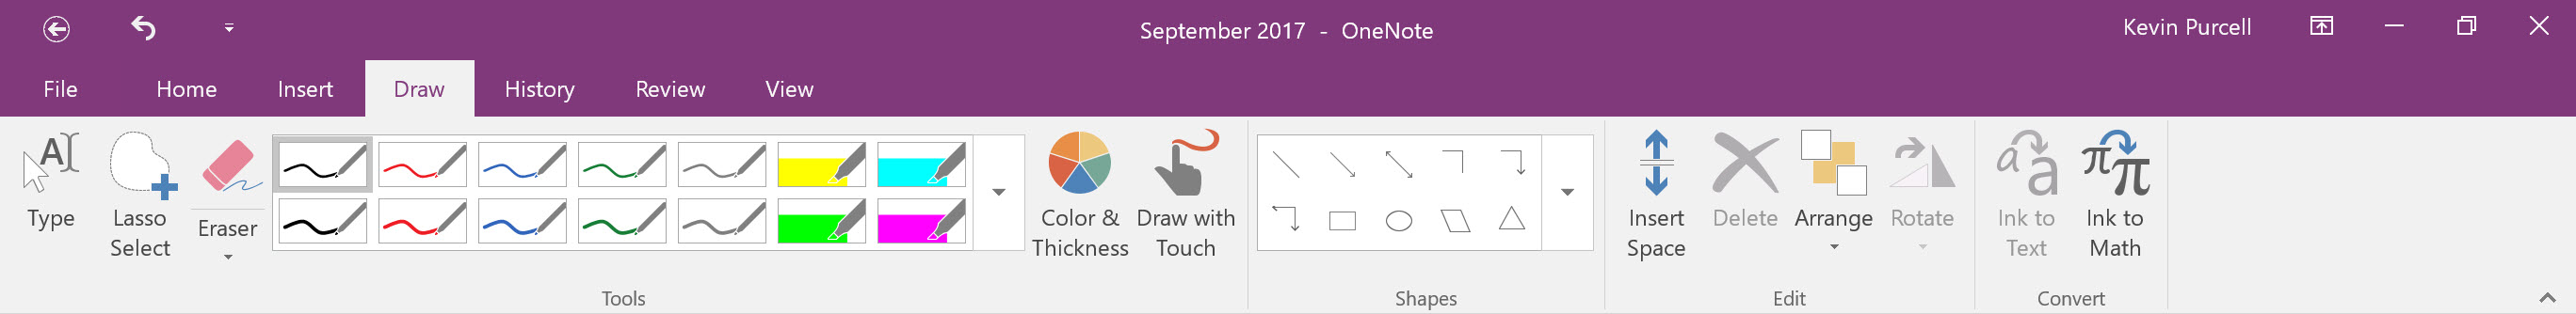 onenote drawing tab in ribbon